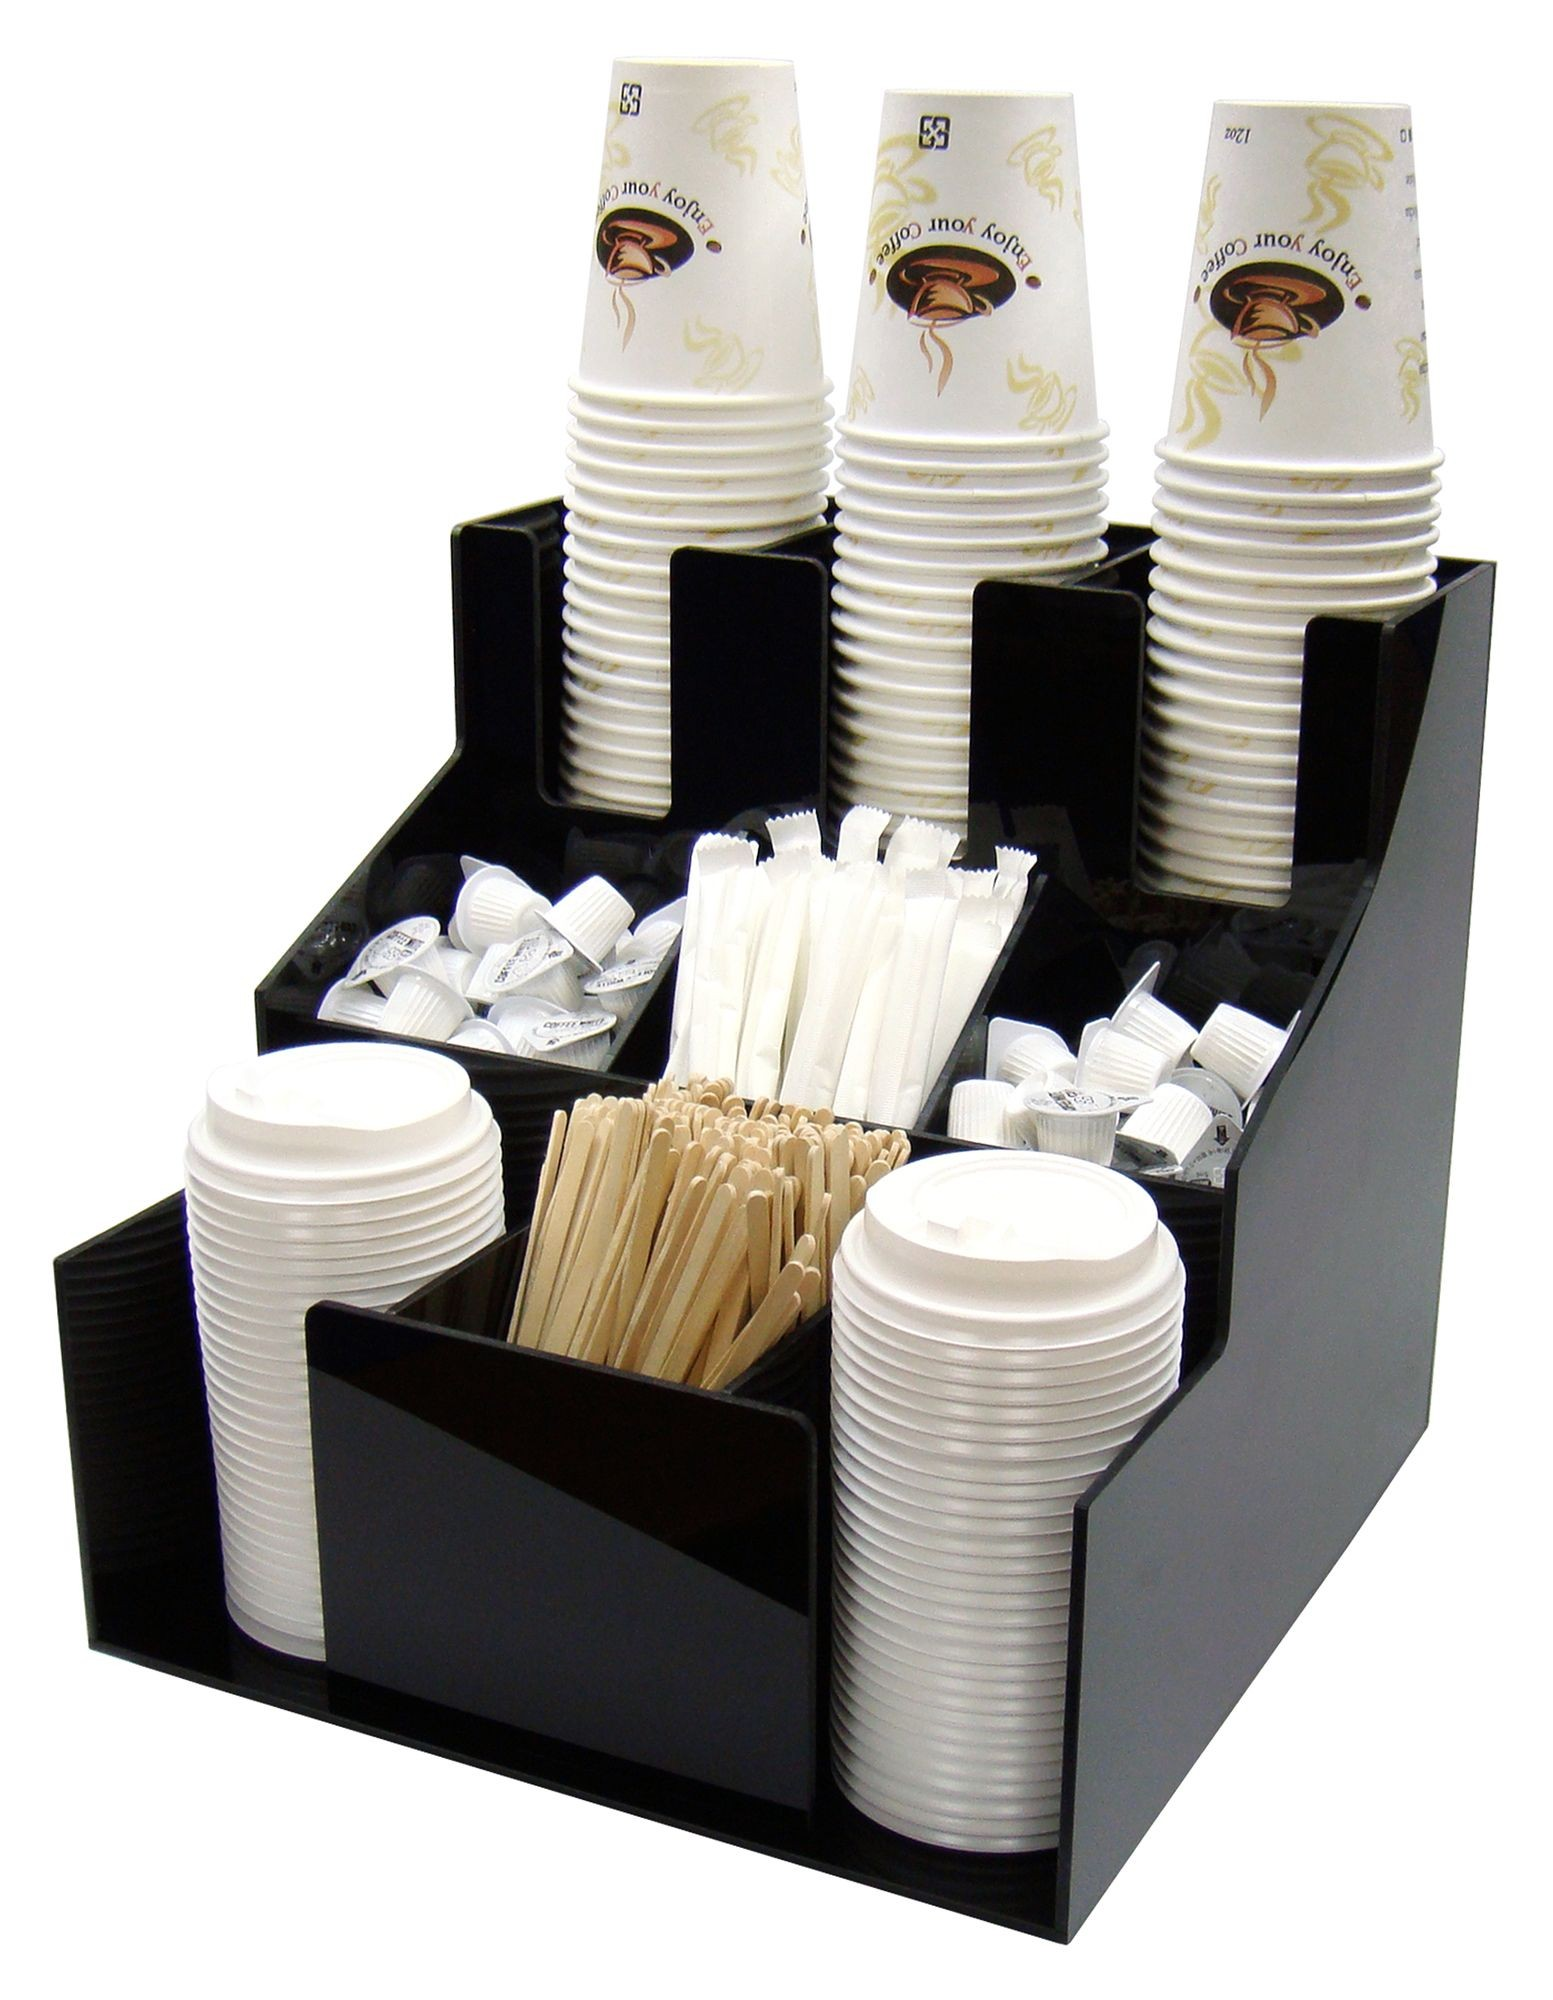 Winco CLSO-3T Black Cup and Lid Organizer, 3 Tiers, 3 Stacks